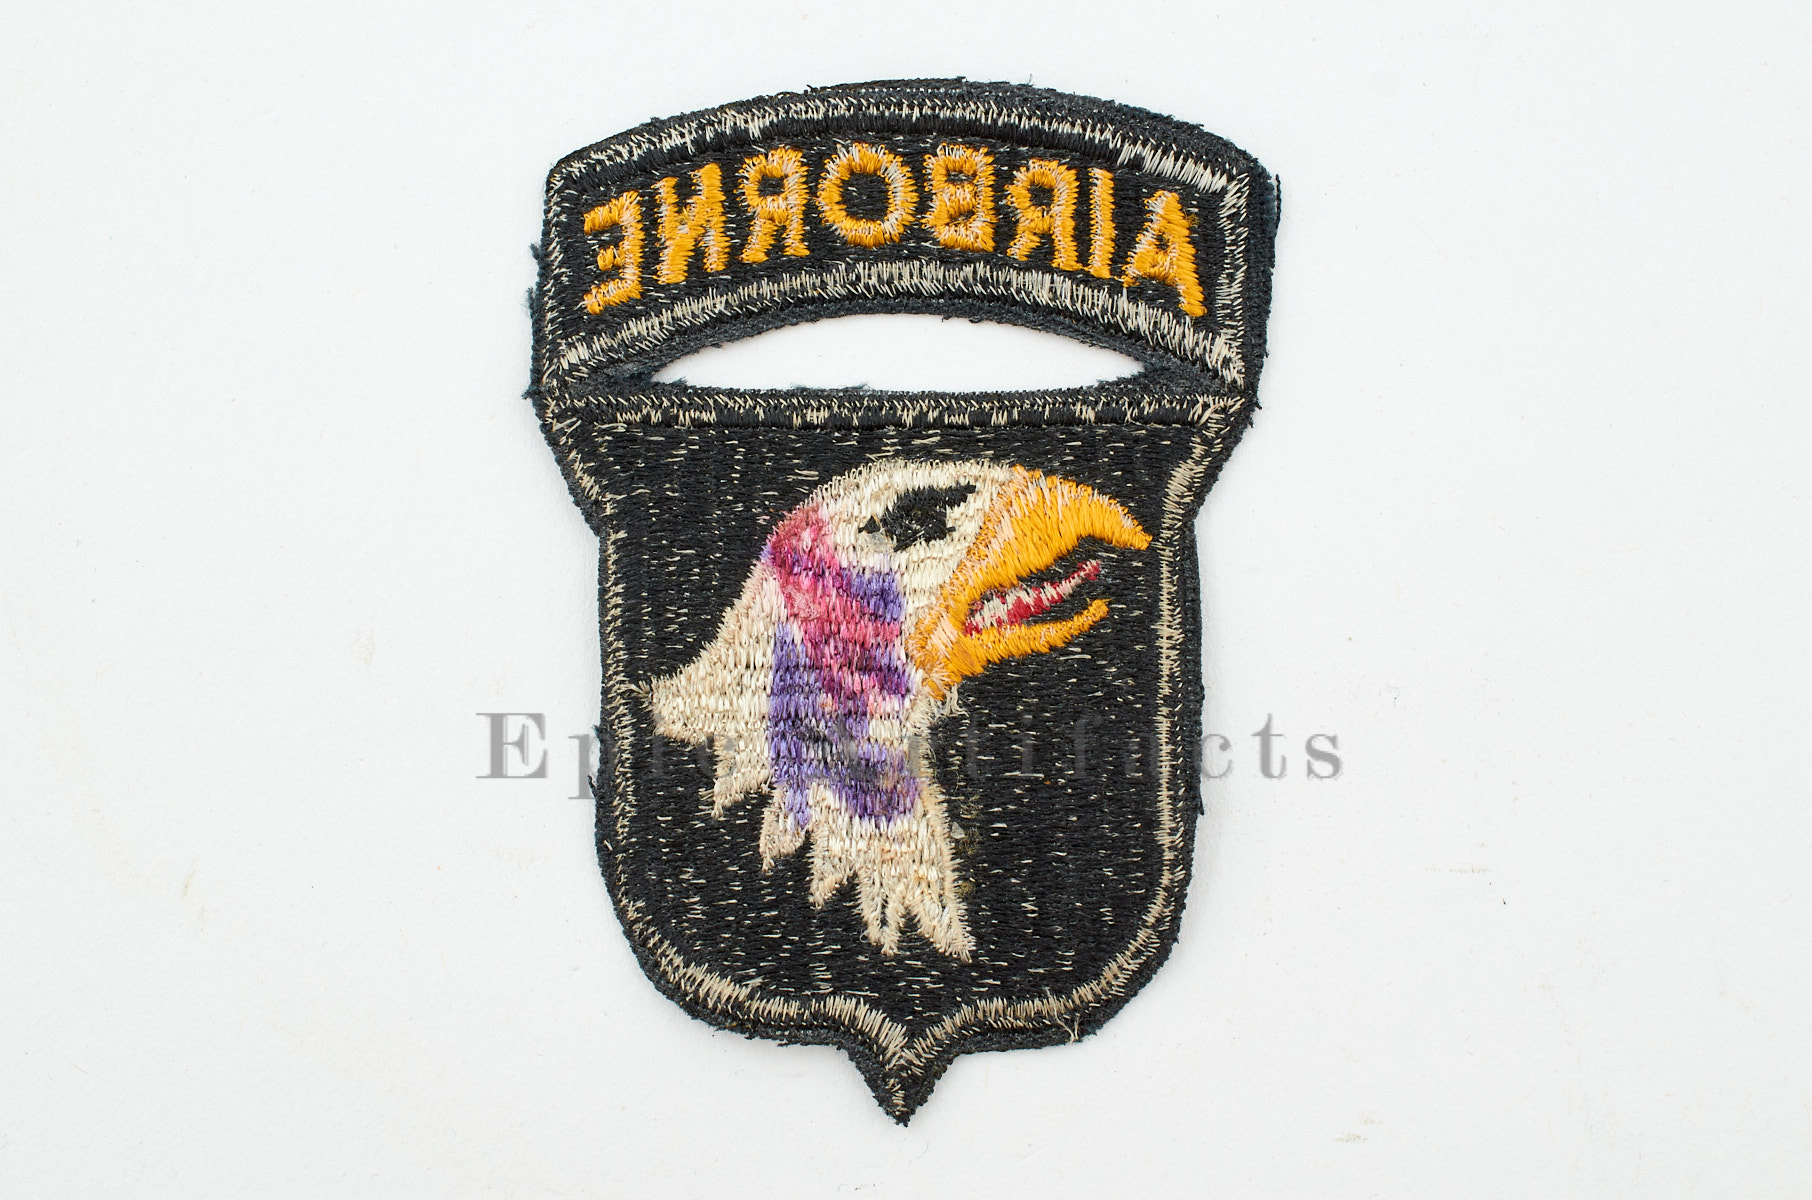 WWII US Army 101st Airborne Patch, Type 7